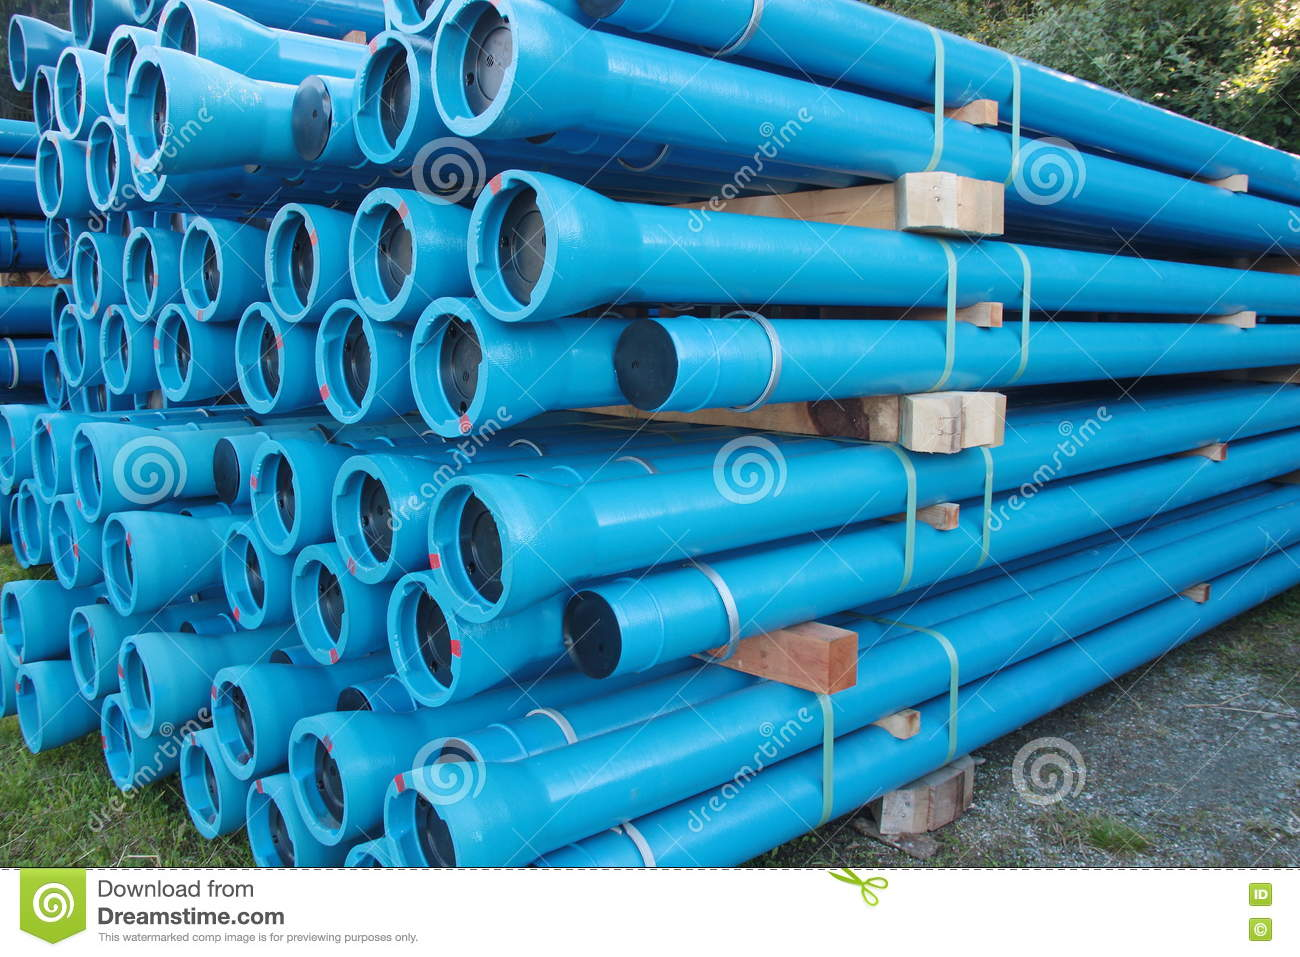 Blue PVC Plastic Pipes And Fittings Used For Underground Water ...